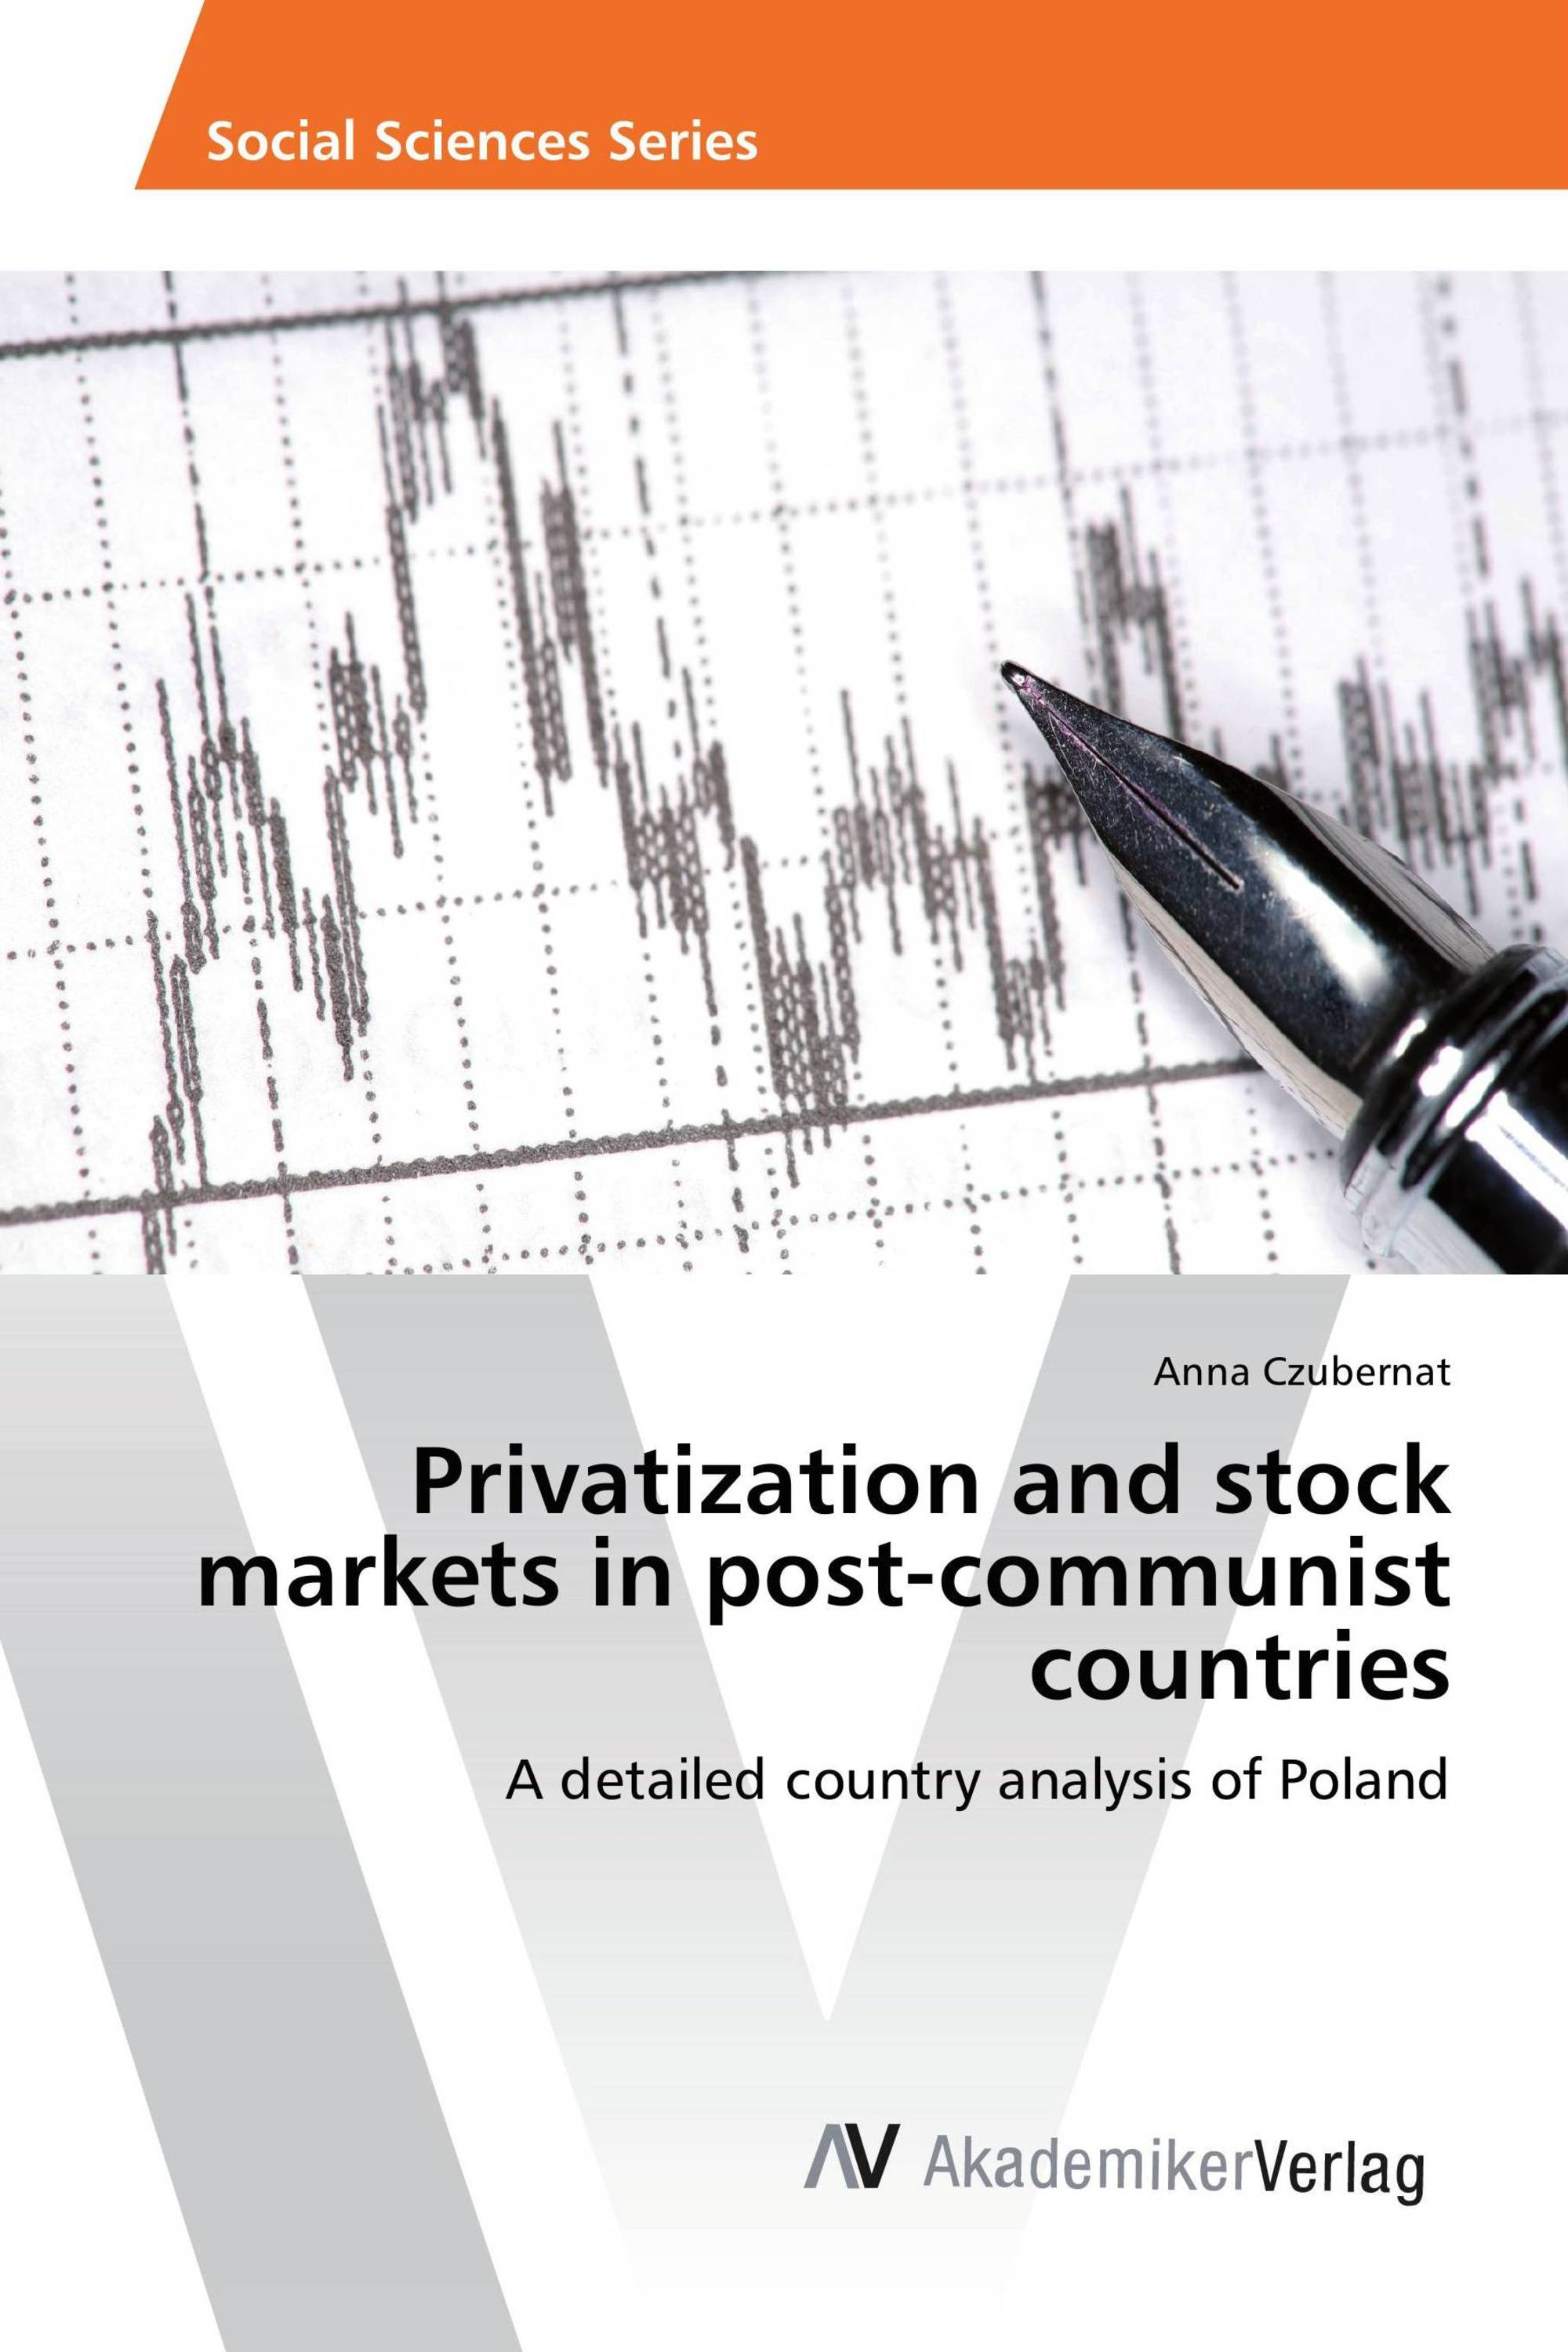 an analysis of the market reforms in post communist poland News of us health reforms dominated the international media earlier in this year, yet the equally contentious reforms taking place throughout post-communist europe have been virtually ignored in poland, the largest of these countries, reforms have contributed to a new healthcare divide by hitting the people who most need health care the .